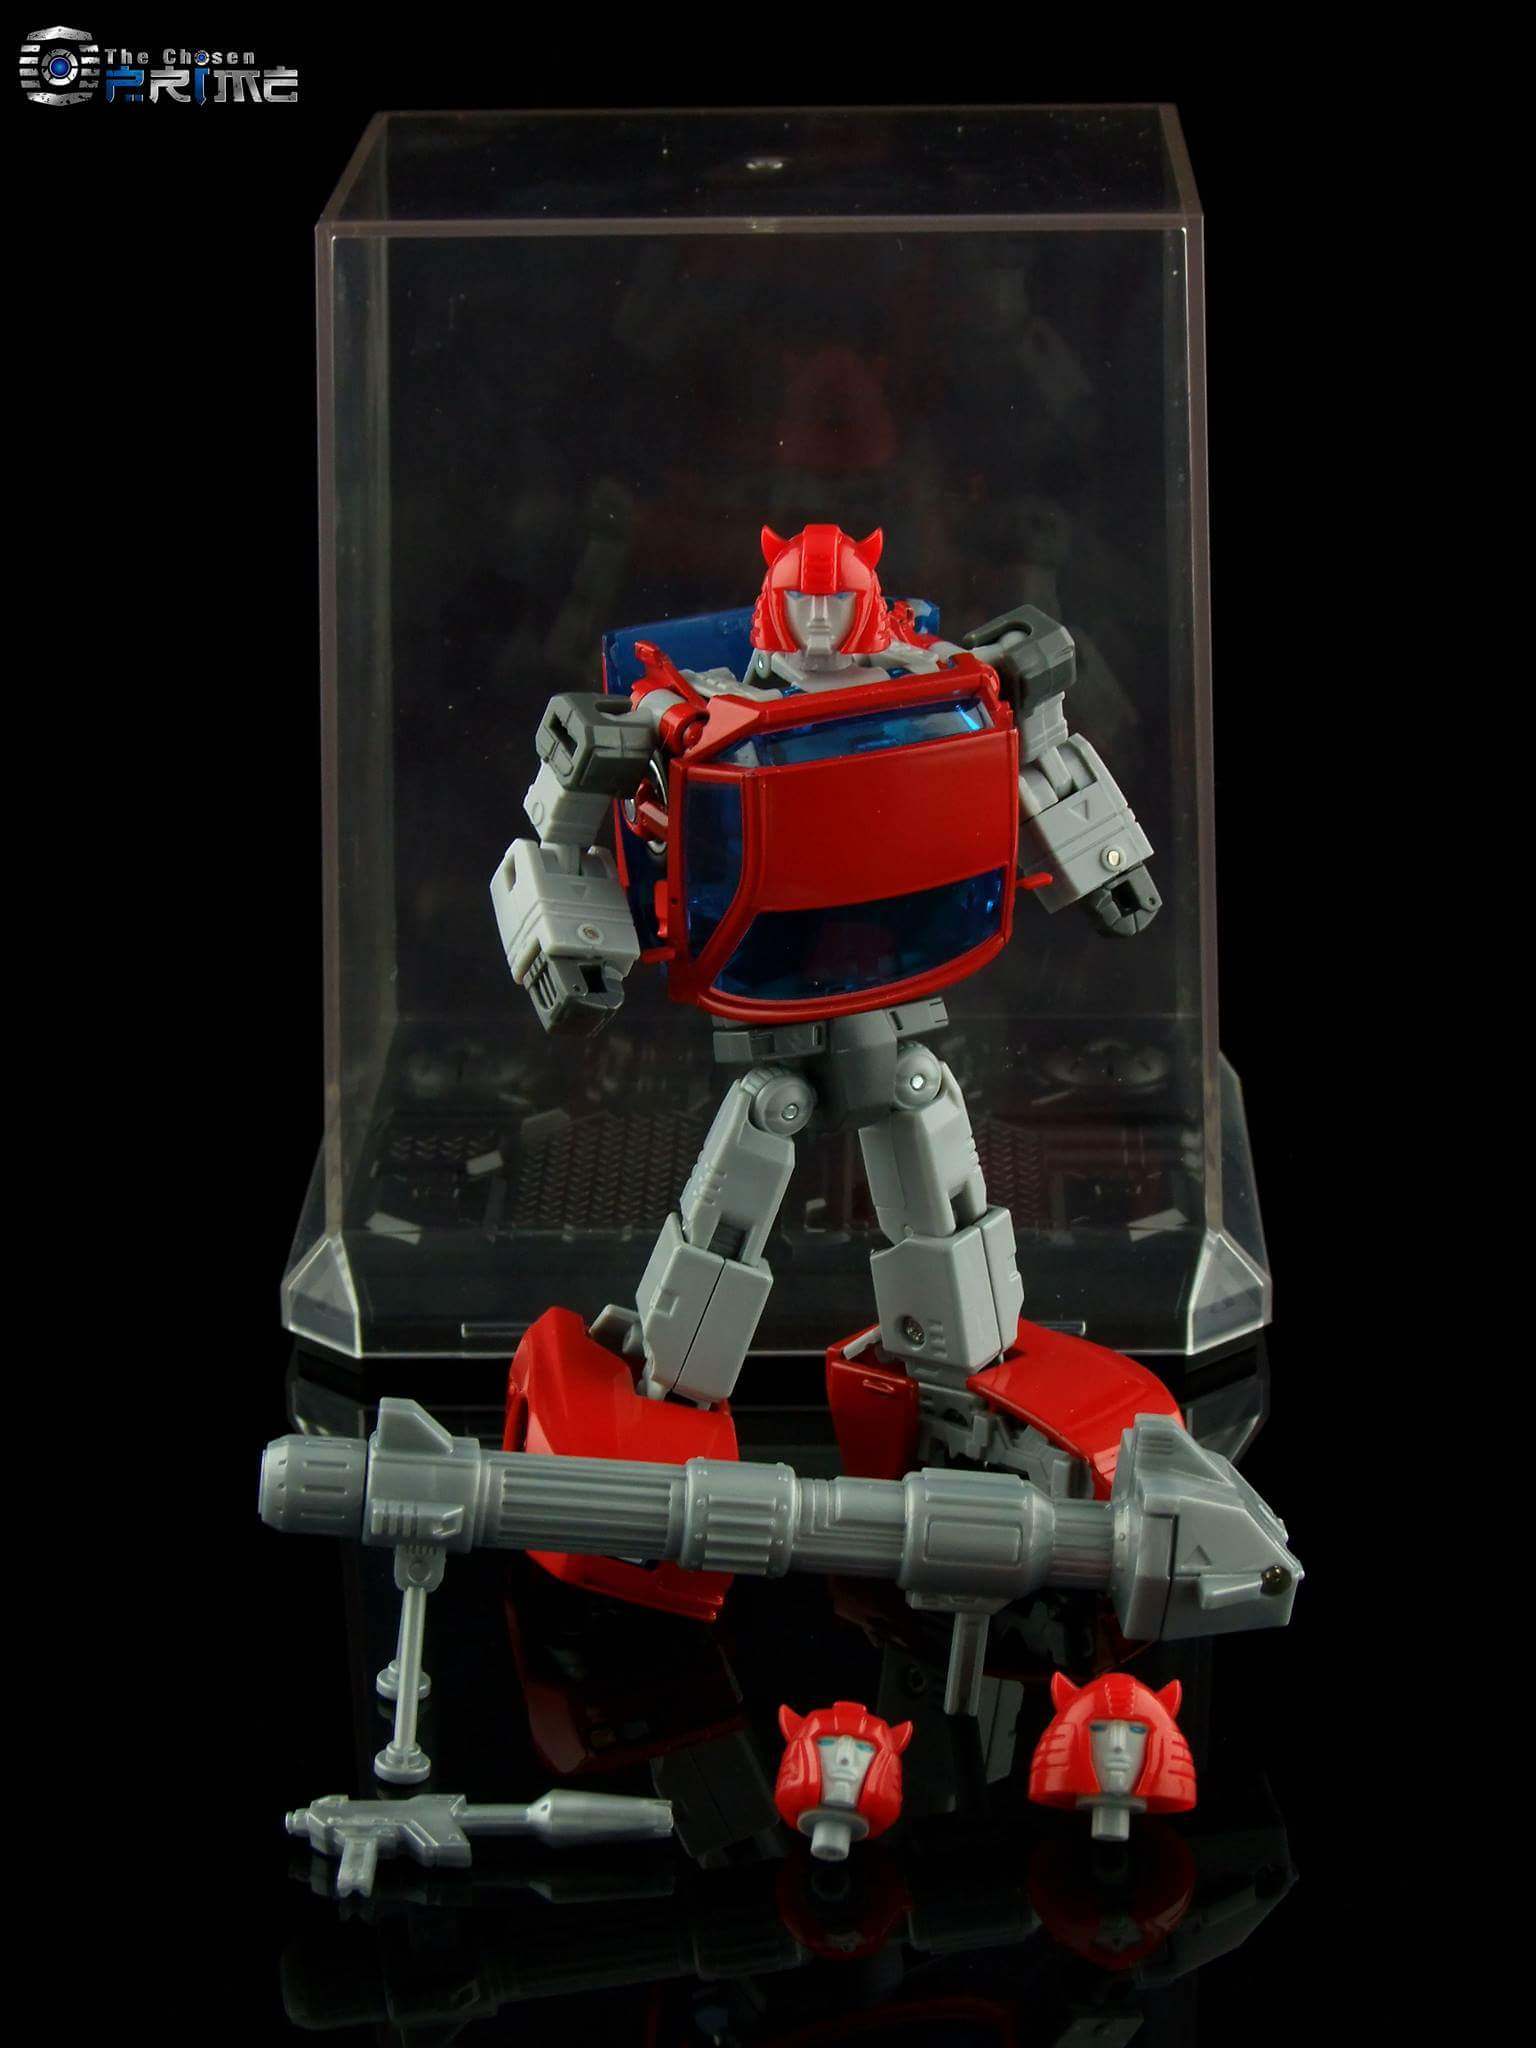 [ACE Collectables] Produit Tiers - Minibots MP - ACE-01 Tumbler (aka Cliffjumper/Matamore), ACE-02 Hiccups (aka Hubcap/Virevolto), ACE-03 Trident (aka Seaspray/Embruns) G0Ch4044